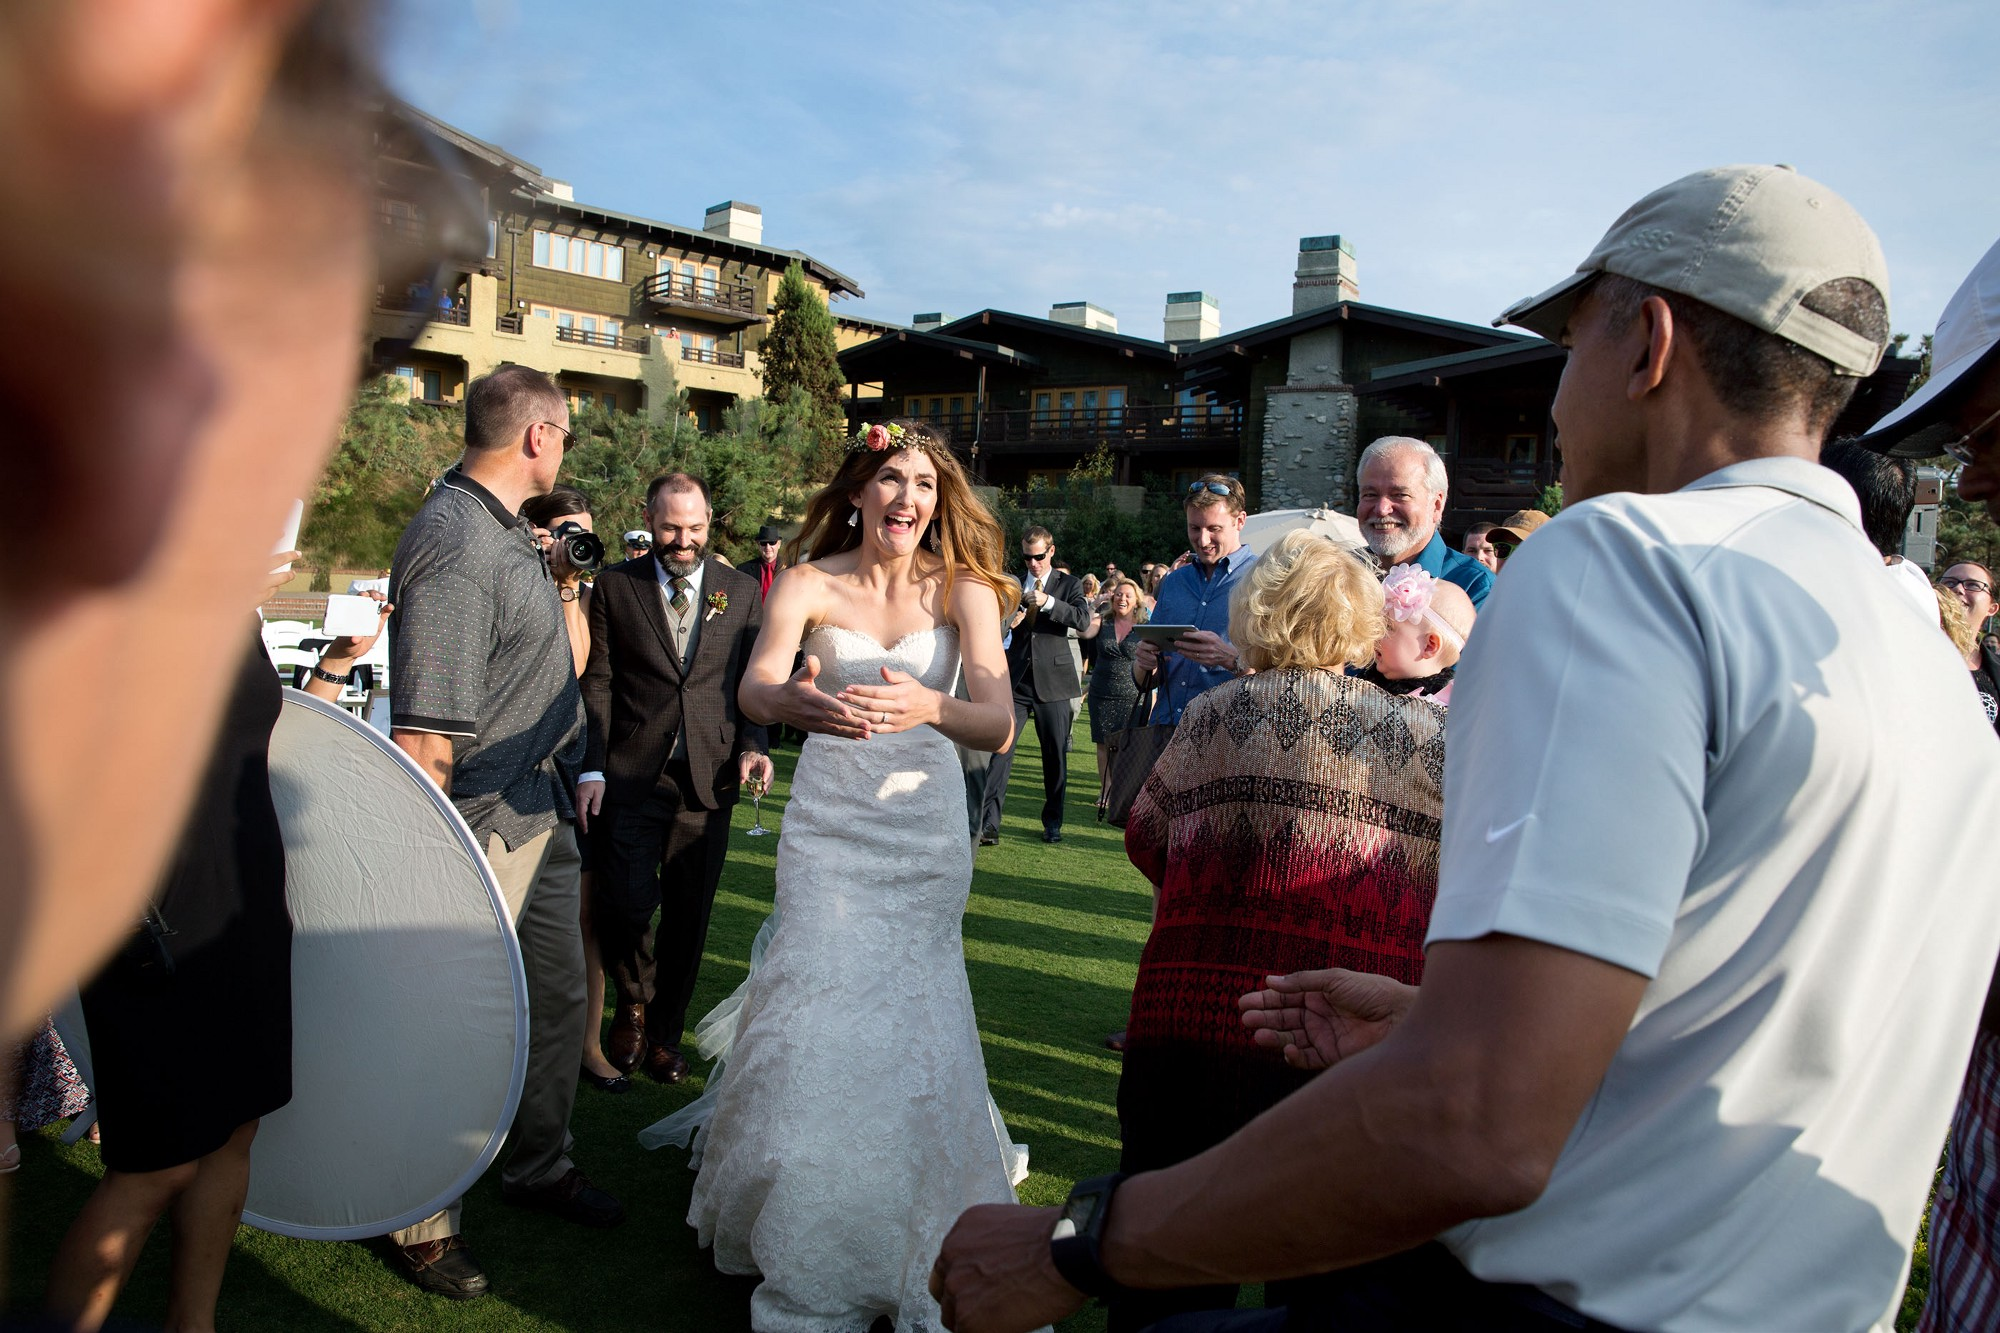 "Oct. 11, 2015 ""The President was playing golf at Torrey Pines Golf Course in San Diego, Calif. As he was finishing his round, he began to shake hands with guests waiting for a wedding ceremony about to begin. The bride and groom were waiting inside but when they looked out the window and saw the President, they decided to make their way outside. I made a grab shot as the bride, Stephanie Tobe, and her soon-to-be husband, Brian Tobe, came running to greet the President. I made sure to send a copy to the happy couple and both wrote back to me that they were extremely grateful to have the President 'crash' their wedding."" (Official White House Photo by Pete Souza)"